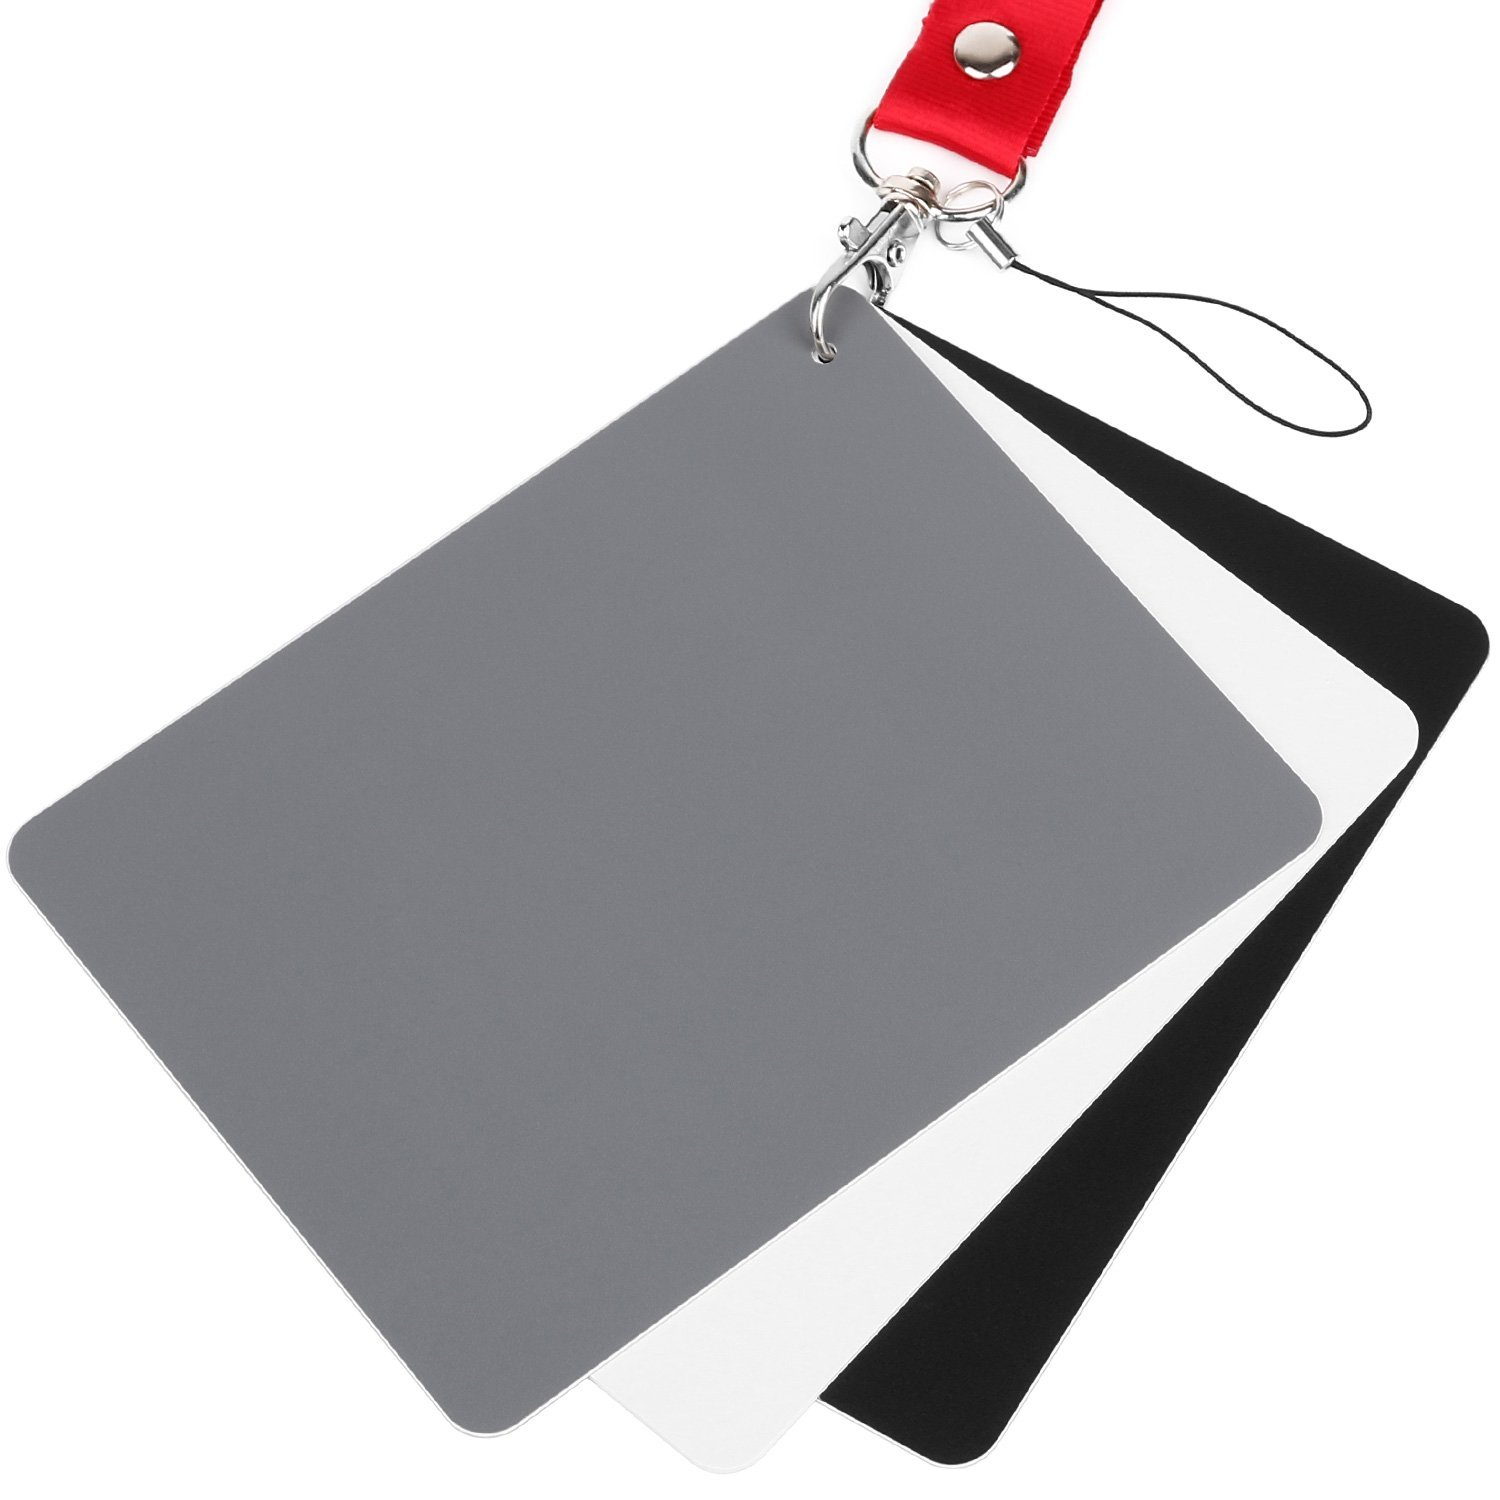 """ChromLives White Balance Grey Card 5.3"""" X7.3"""" 18% Exposure Photography Gray Card for Video DSLR and Film Photography, Black White and 18% Gray"""